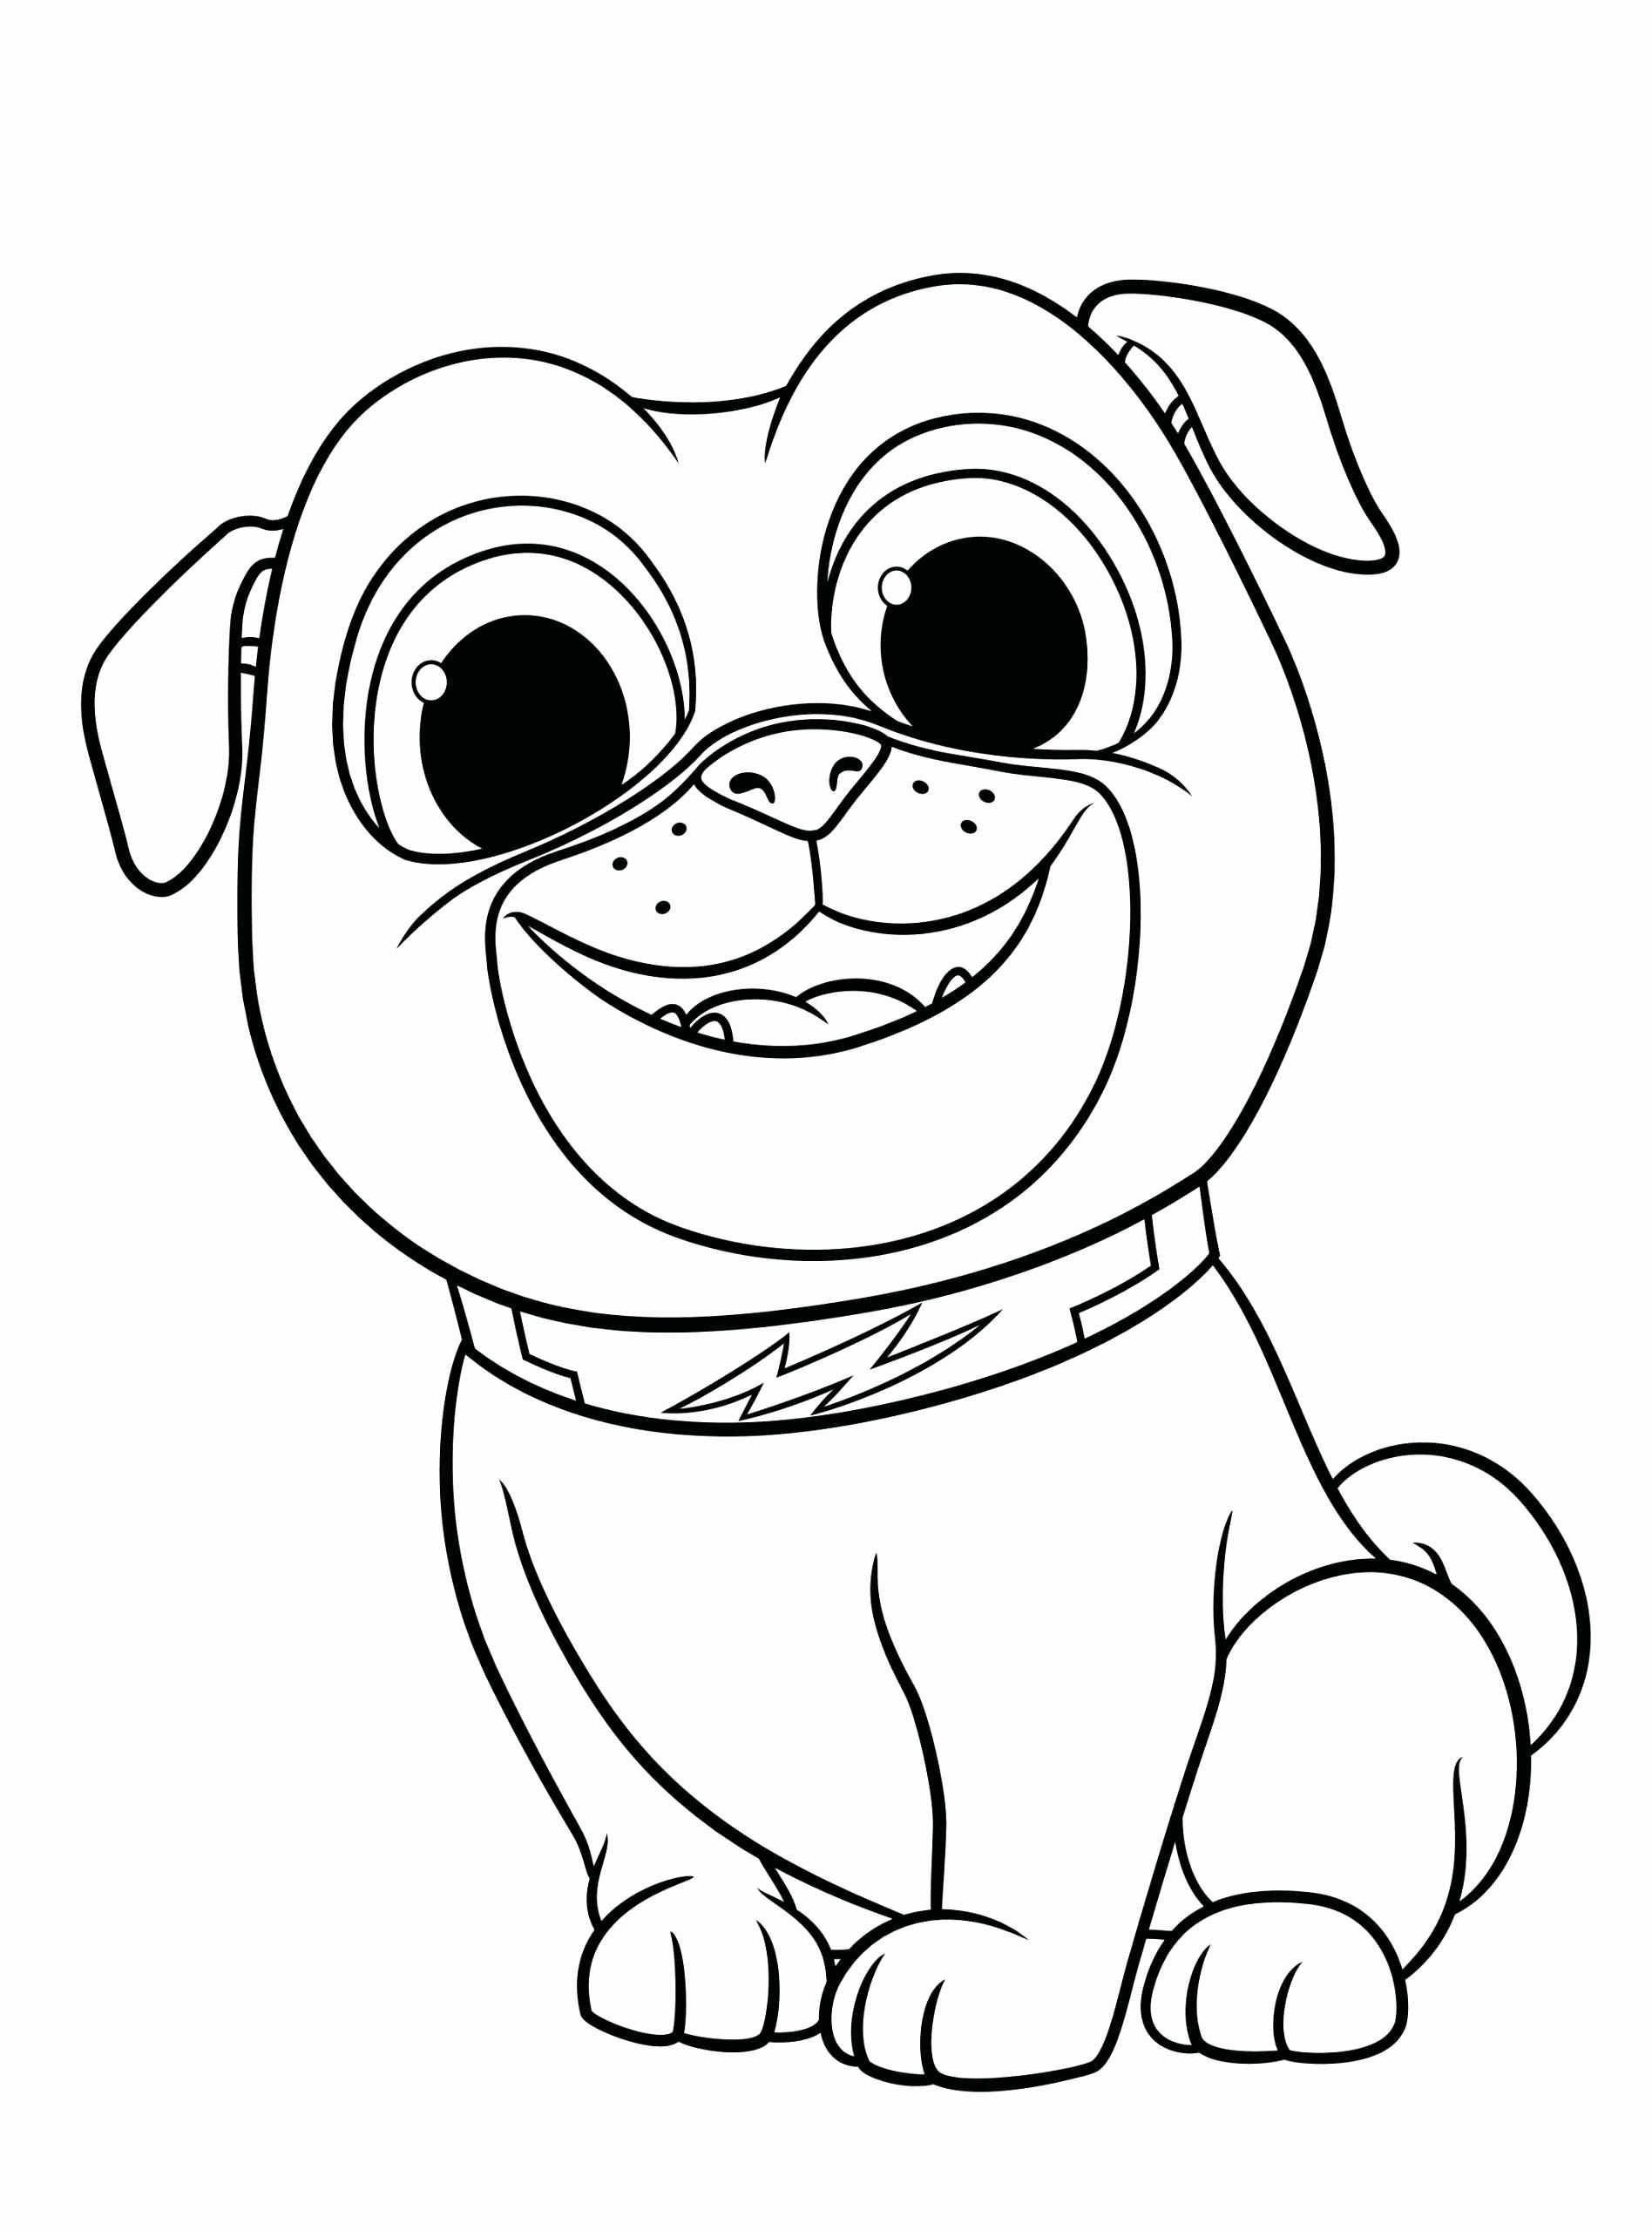 Animal Coloring Pages For Kids Beagle Dog To Print Out In